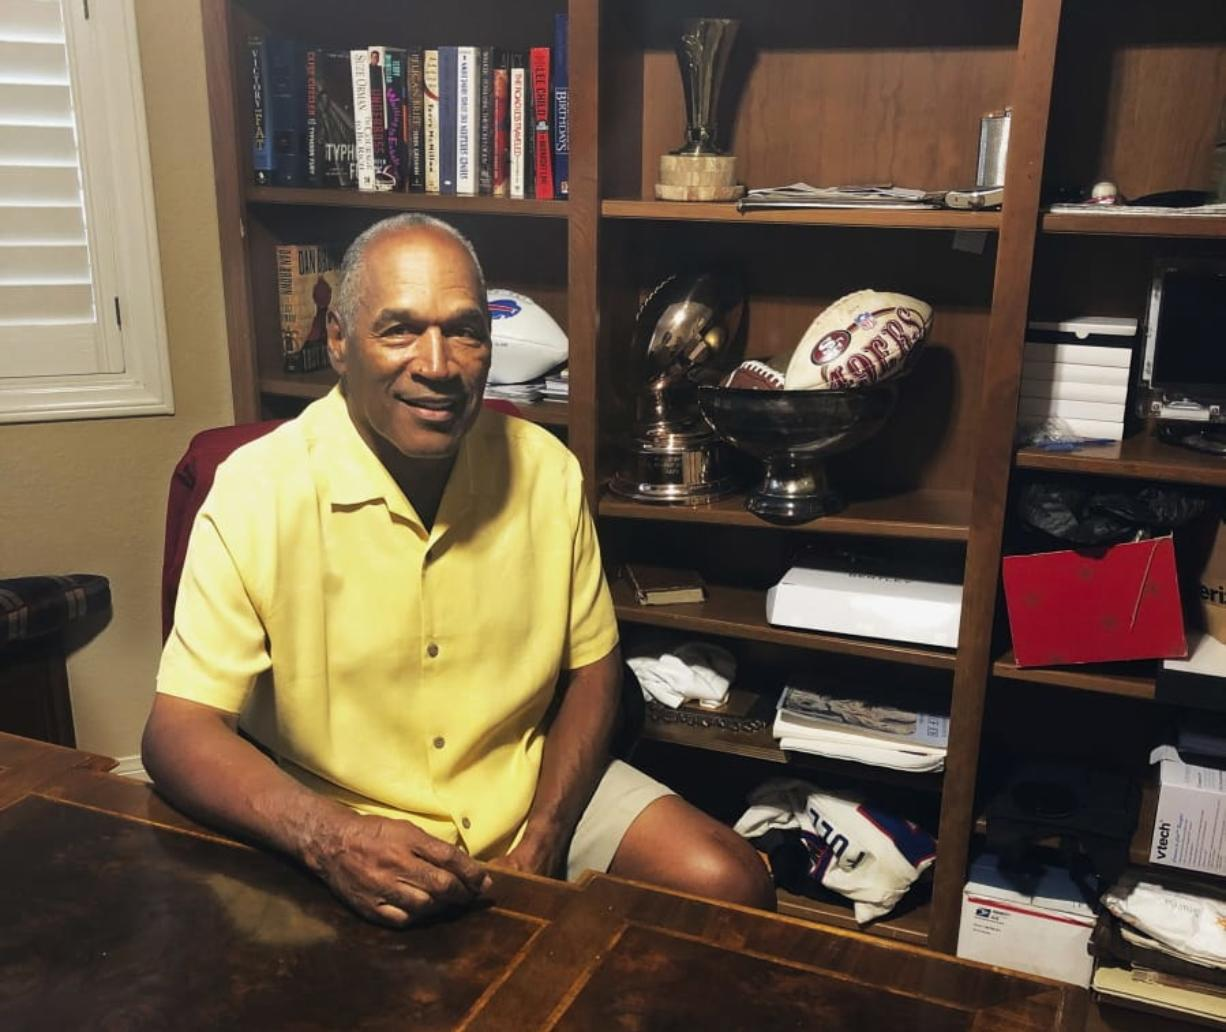 O.J. Simpson in his Las Vegas area home Thursday. After 25 years living under the shadow of one of the nation's most notorious murder cases, Simpson says his life now is fine.